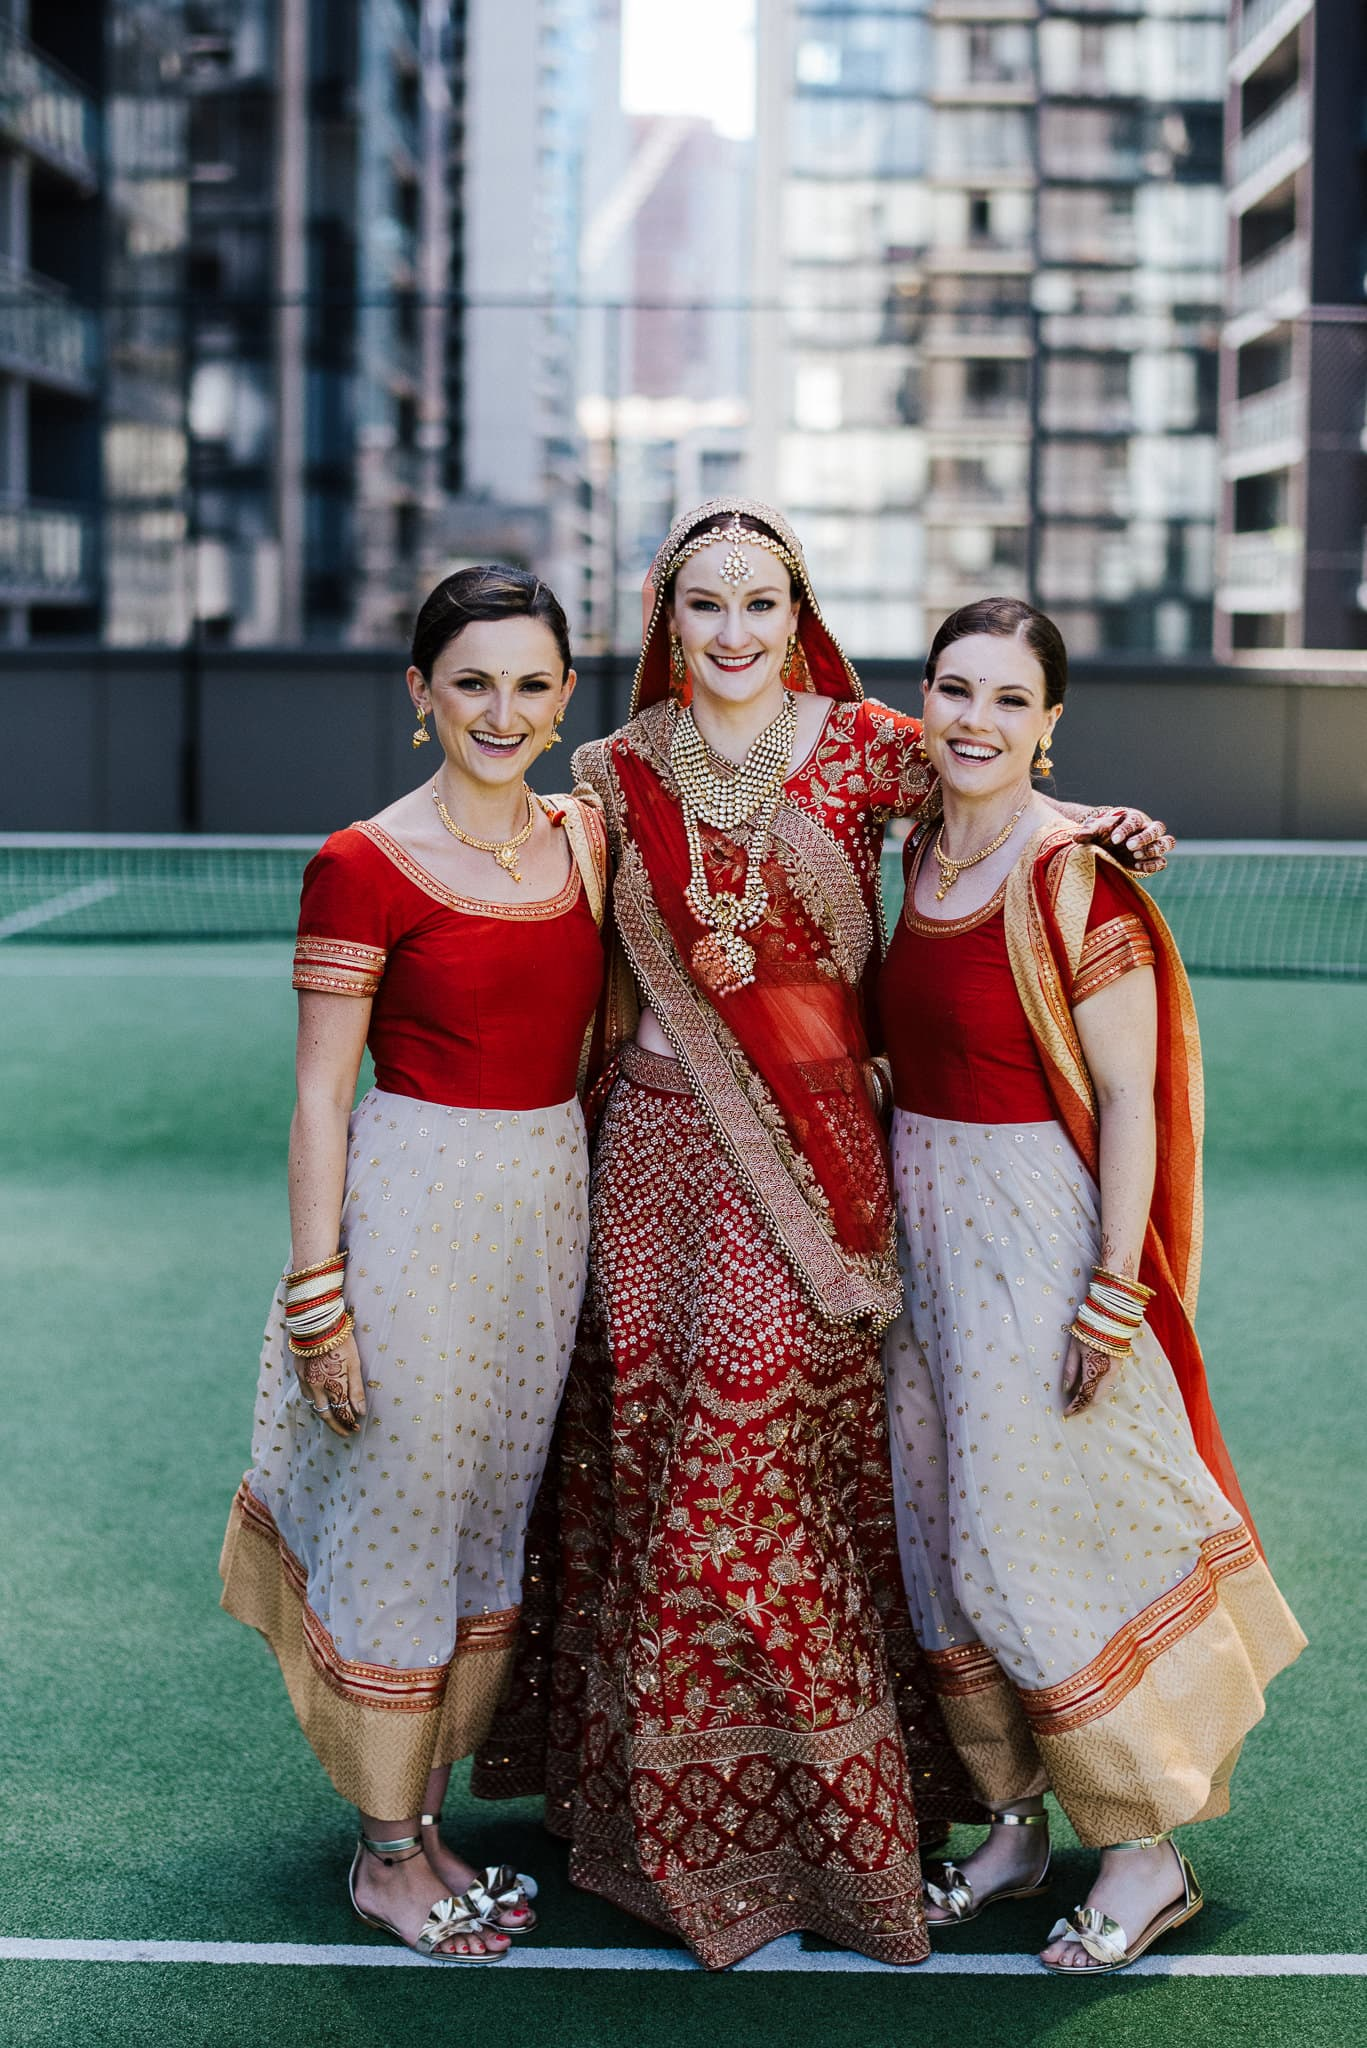 Australian bride, Claire wore a classic Indian bridal lehenga for her wedding to Rohit in Melbourne, Australia. She had a lot of support from her two bridesmaids during the entire wedding.